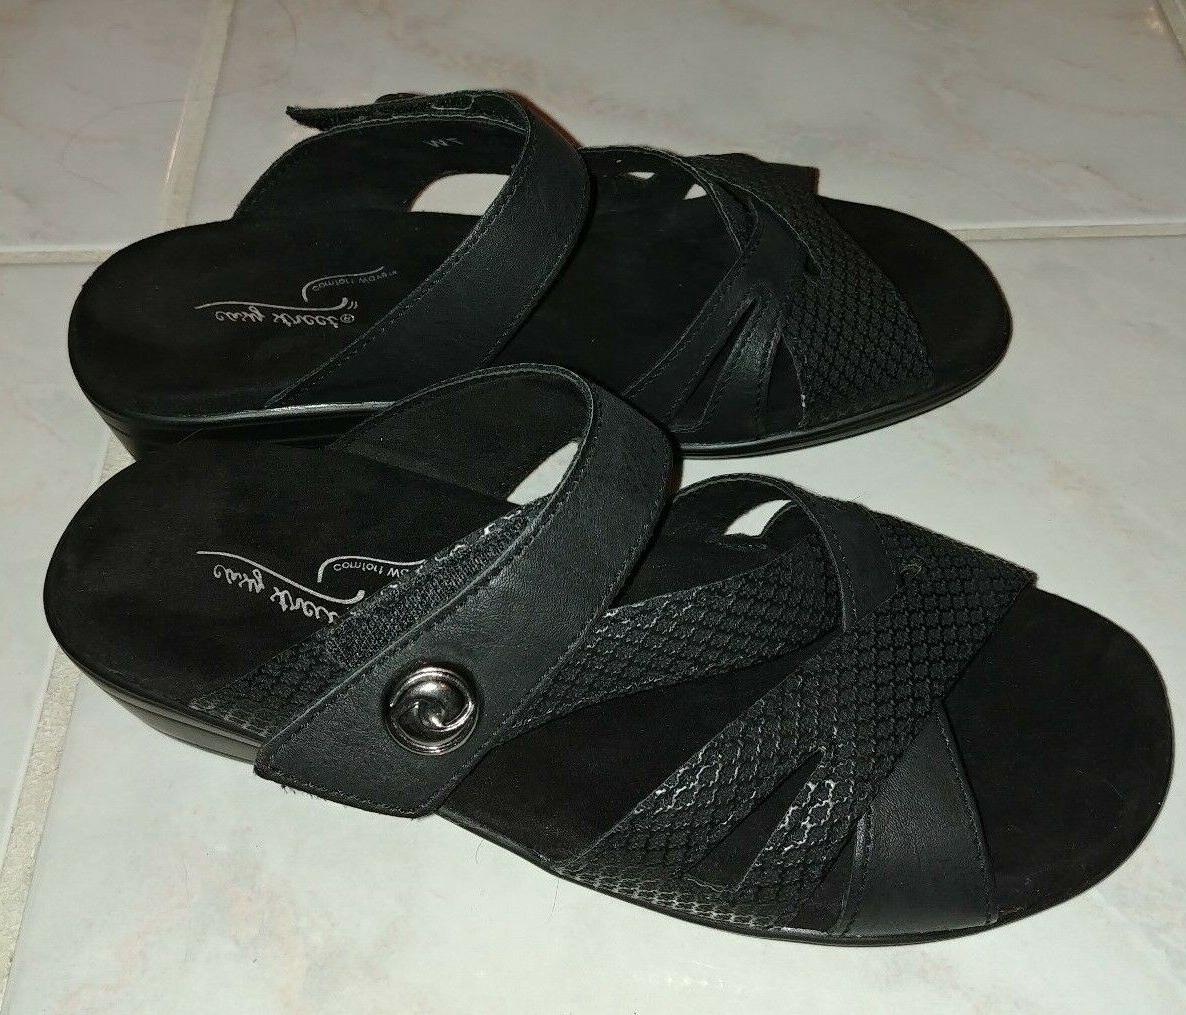 feature wedge slide sandals black size 7w